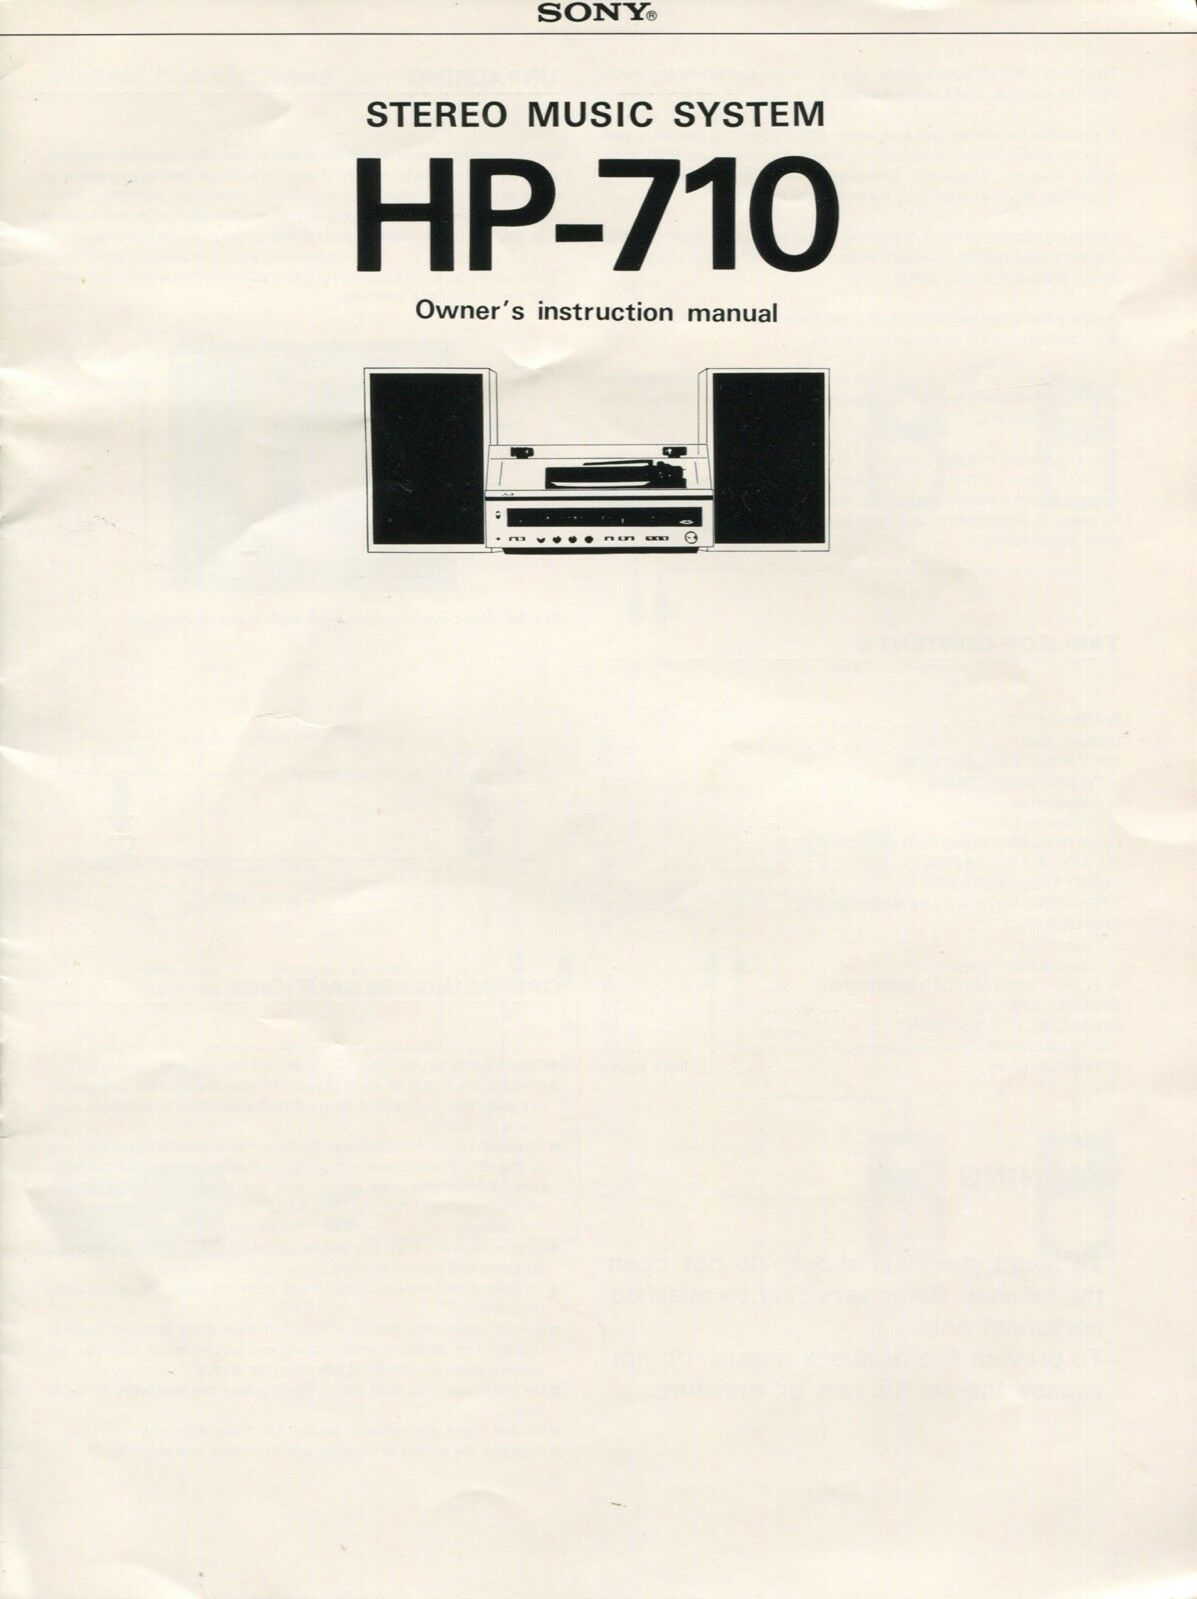 Sony HP-710 Original Stereo Music System Owners Manual 1 of 2Only 1  available ...